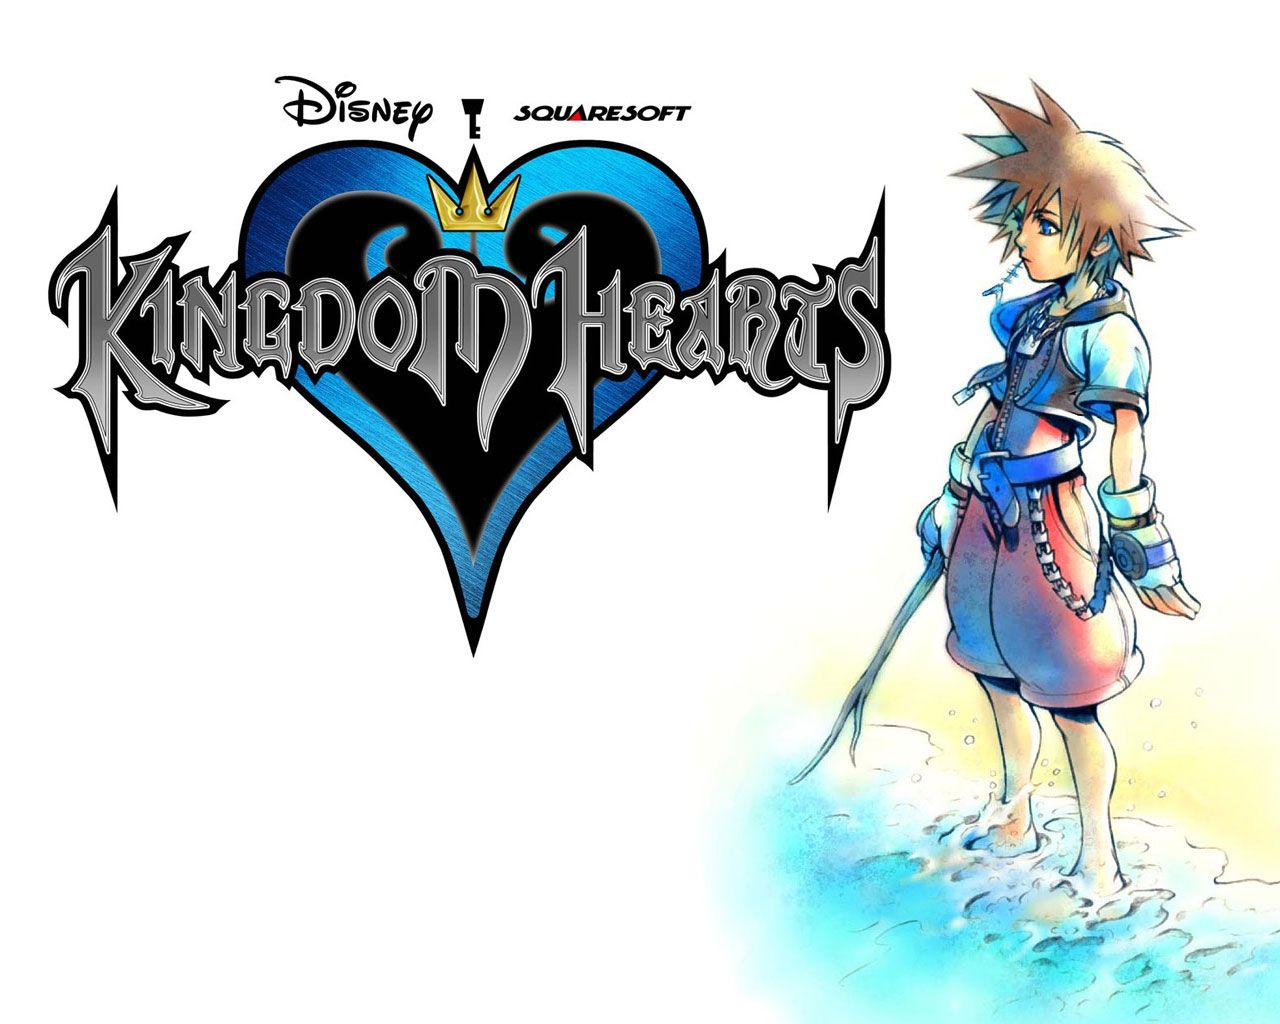 Kingdom Hearts Computer Wallpapers Sora kingdom hearts